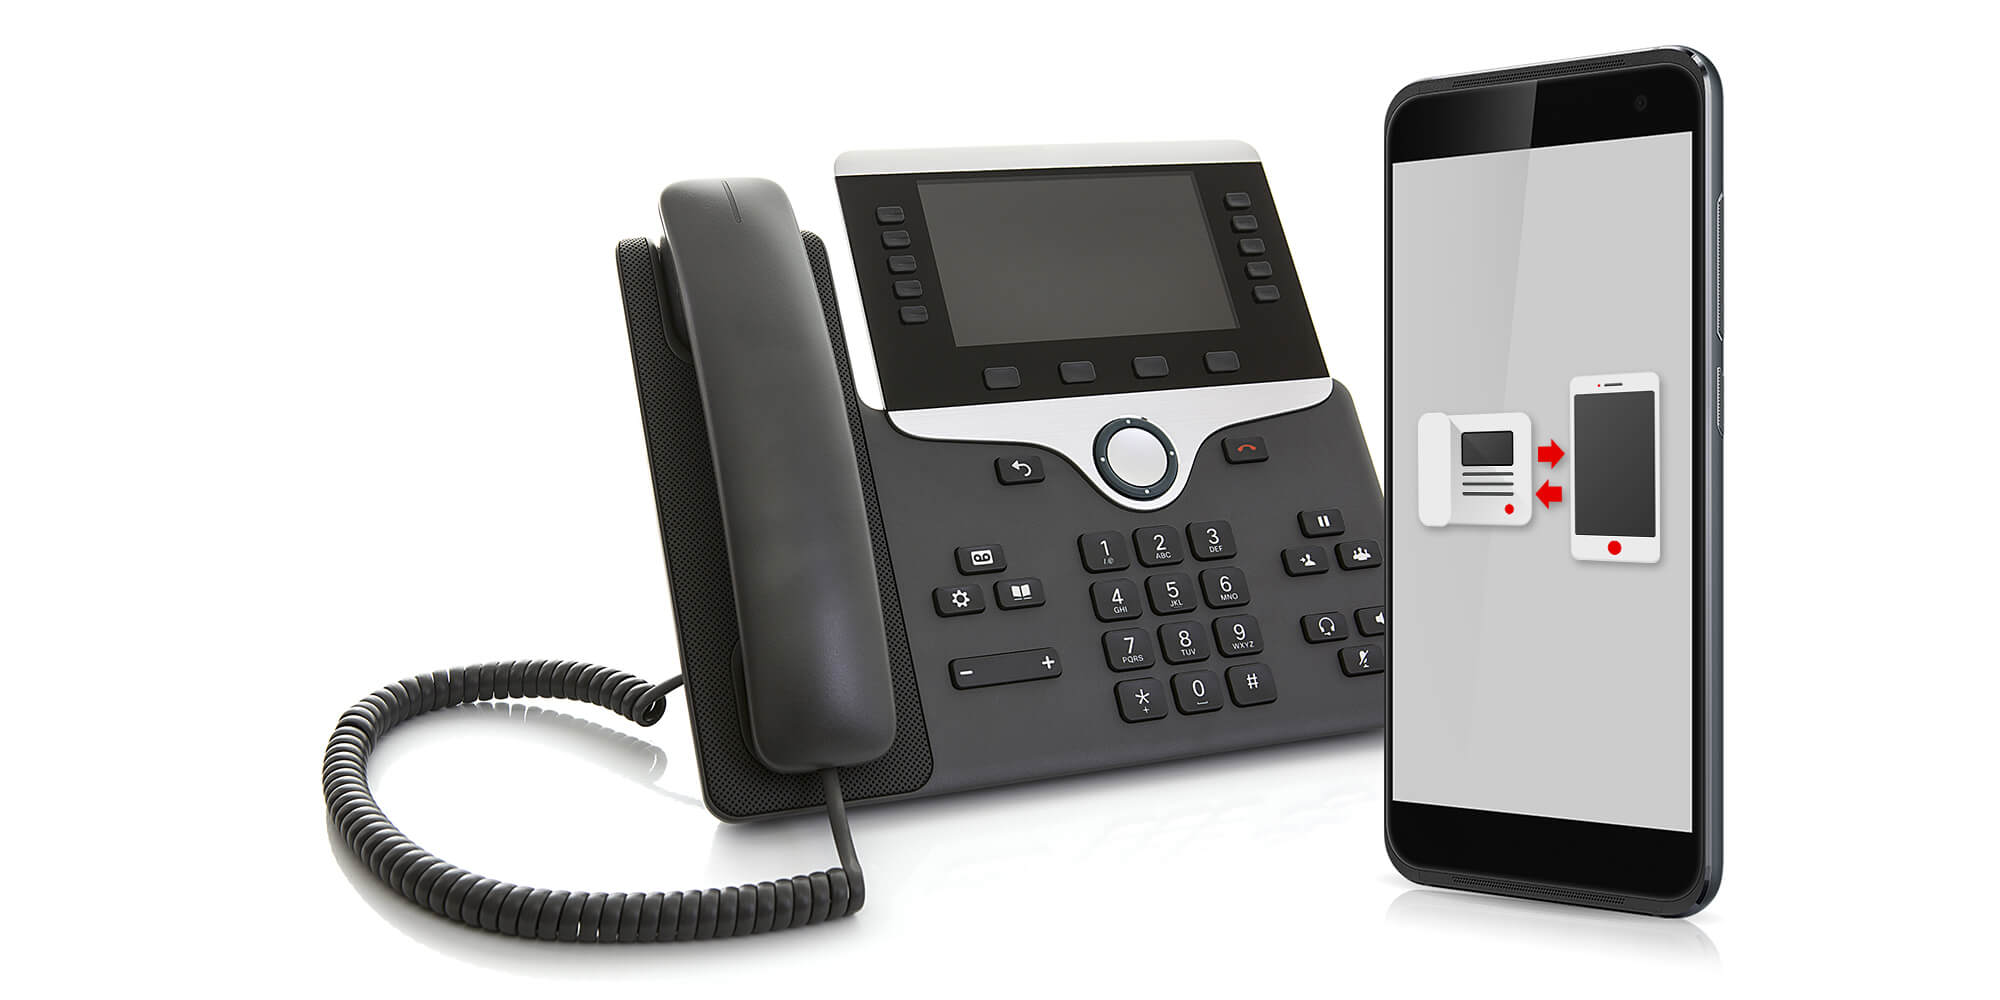 Landline phone beside a mobile phone